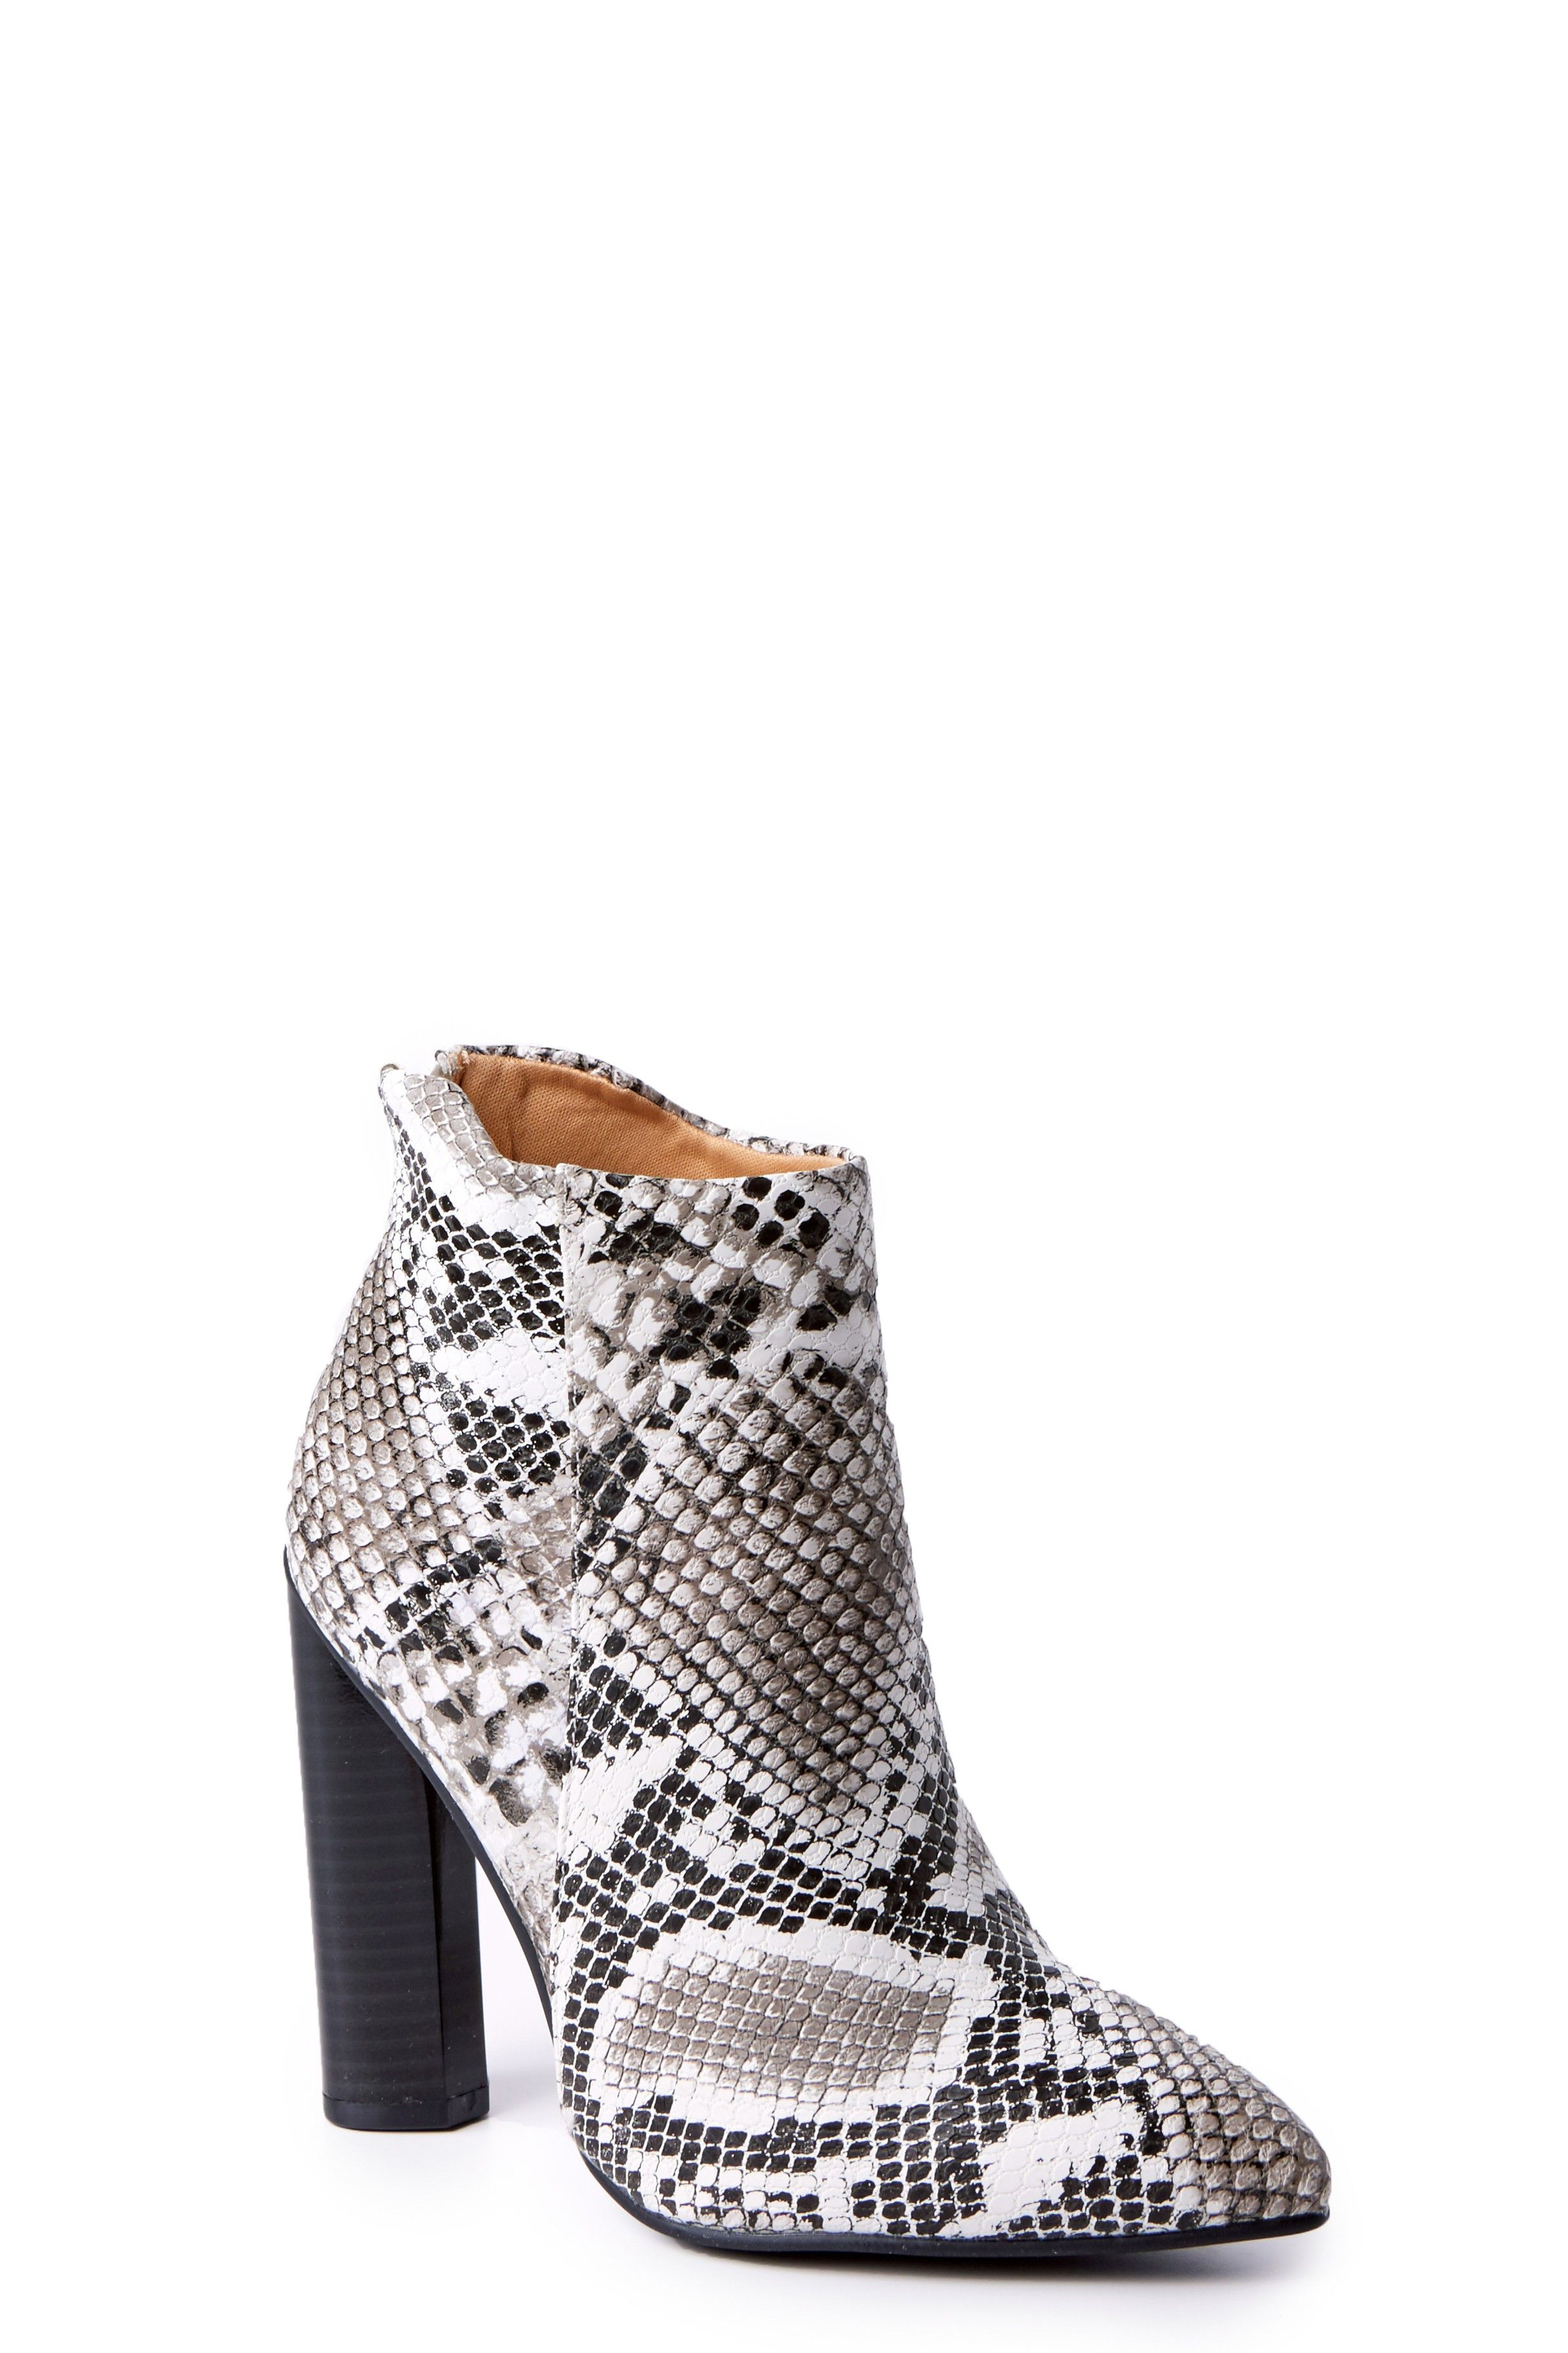 4e9995340ba Give A Hiss Snake Print High Heel Ankle Booties